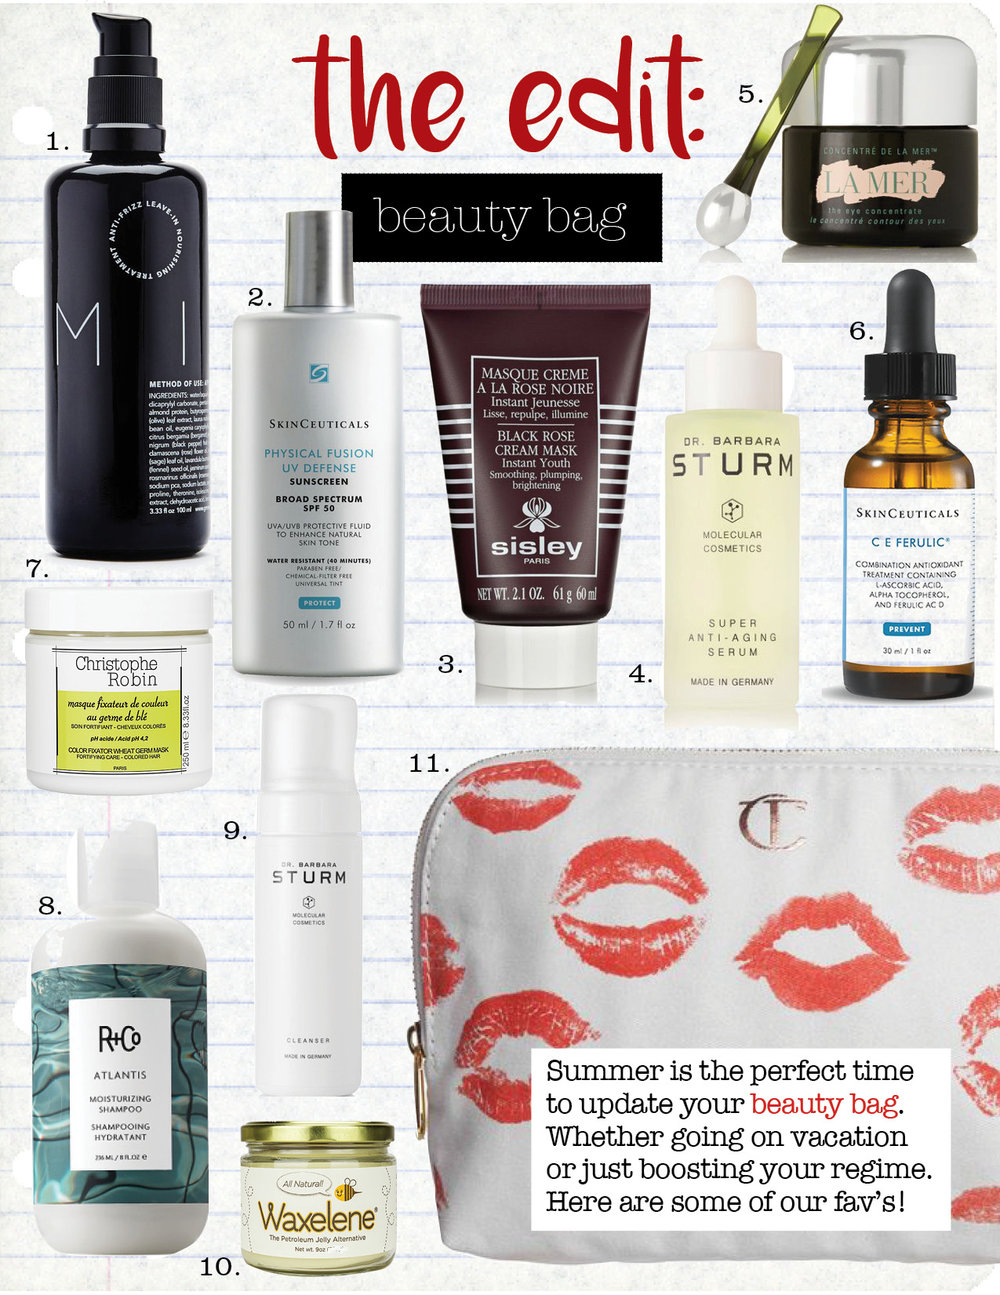 1. reverie milk anti-frizz leave in hair treatment, $29,  theline.com  2. skin ceuticals physical fusion uv defense spf 50, $34,  skinceuticals.com  3. sisley-paris black rose cream mask, $162,  net-a-porter.com  4. dr. barbara sturm super anti-aging serum, $350,  net-a-porter.com  5. la mer eye concentrate 15ml, $195,  net-a-porter.com  6. skin ceuticals c e ferulic serum, $165,  skinceuticals.com  7. christophe robin color fixator wheat germ mask, $43,  us.christophe-robin.com  8. r+co atlantis moisturizing shampoo, $28,  barneys.com  9. dr. barbara sturm cleanser, $70,  net-a-porter.com  10.  waxelene salve, $34,  musely.com  11. charlotte tilbury makeup bag, $20,  shop.nordstrom.com